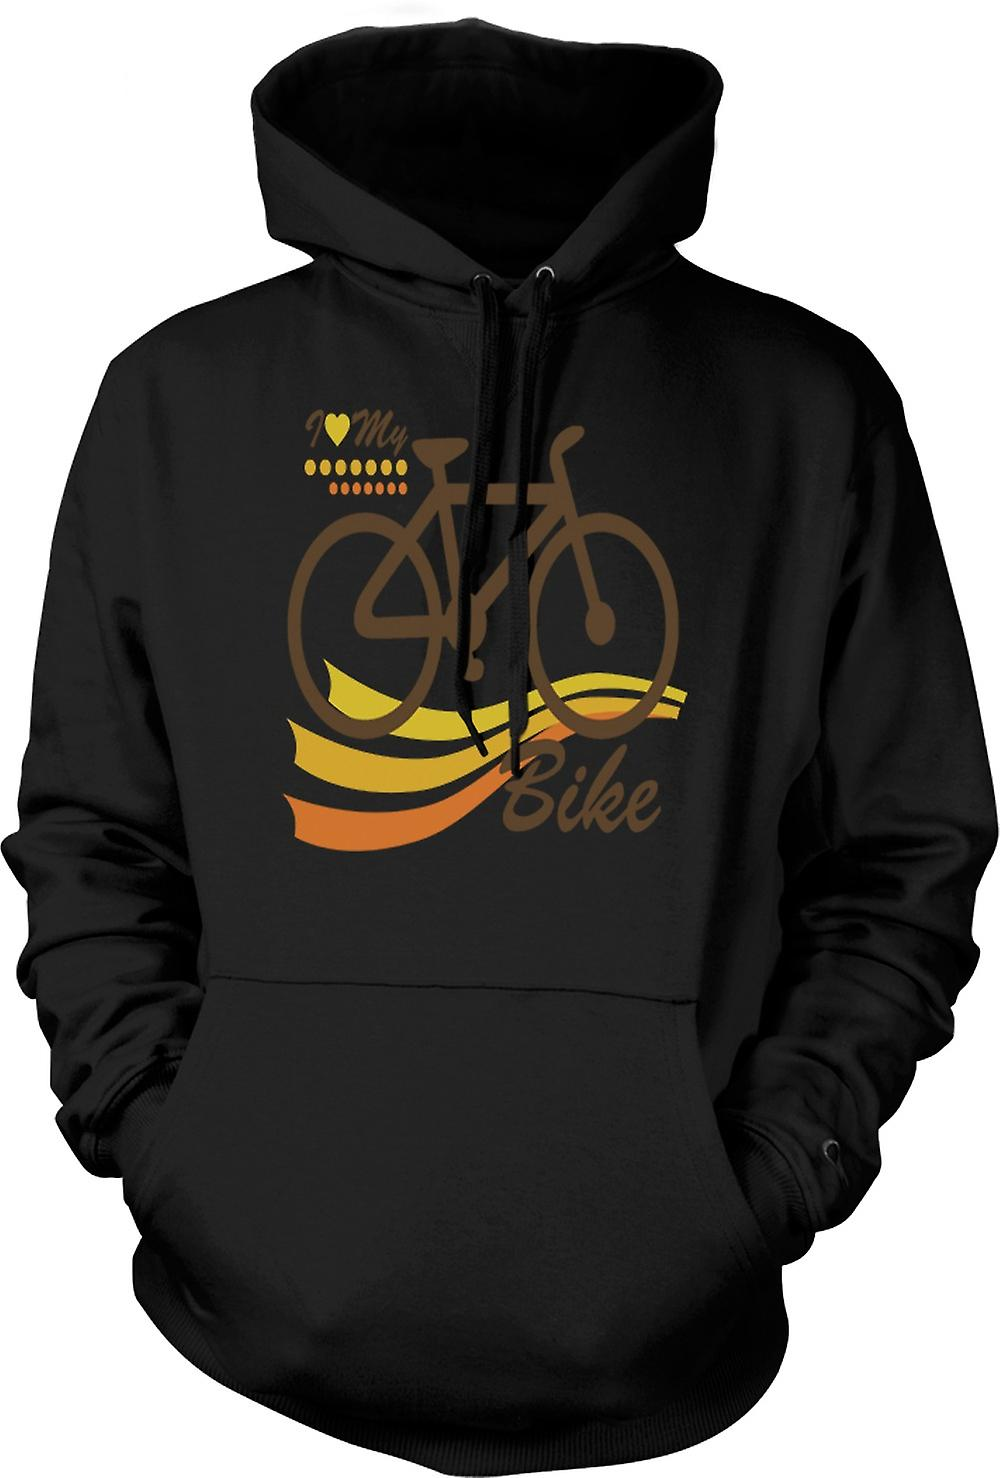 Mens Hoodie - I Love My Bike - Drôle